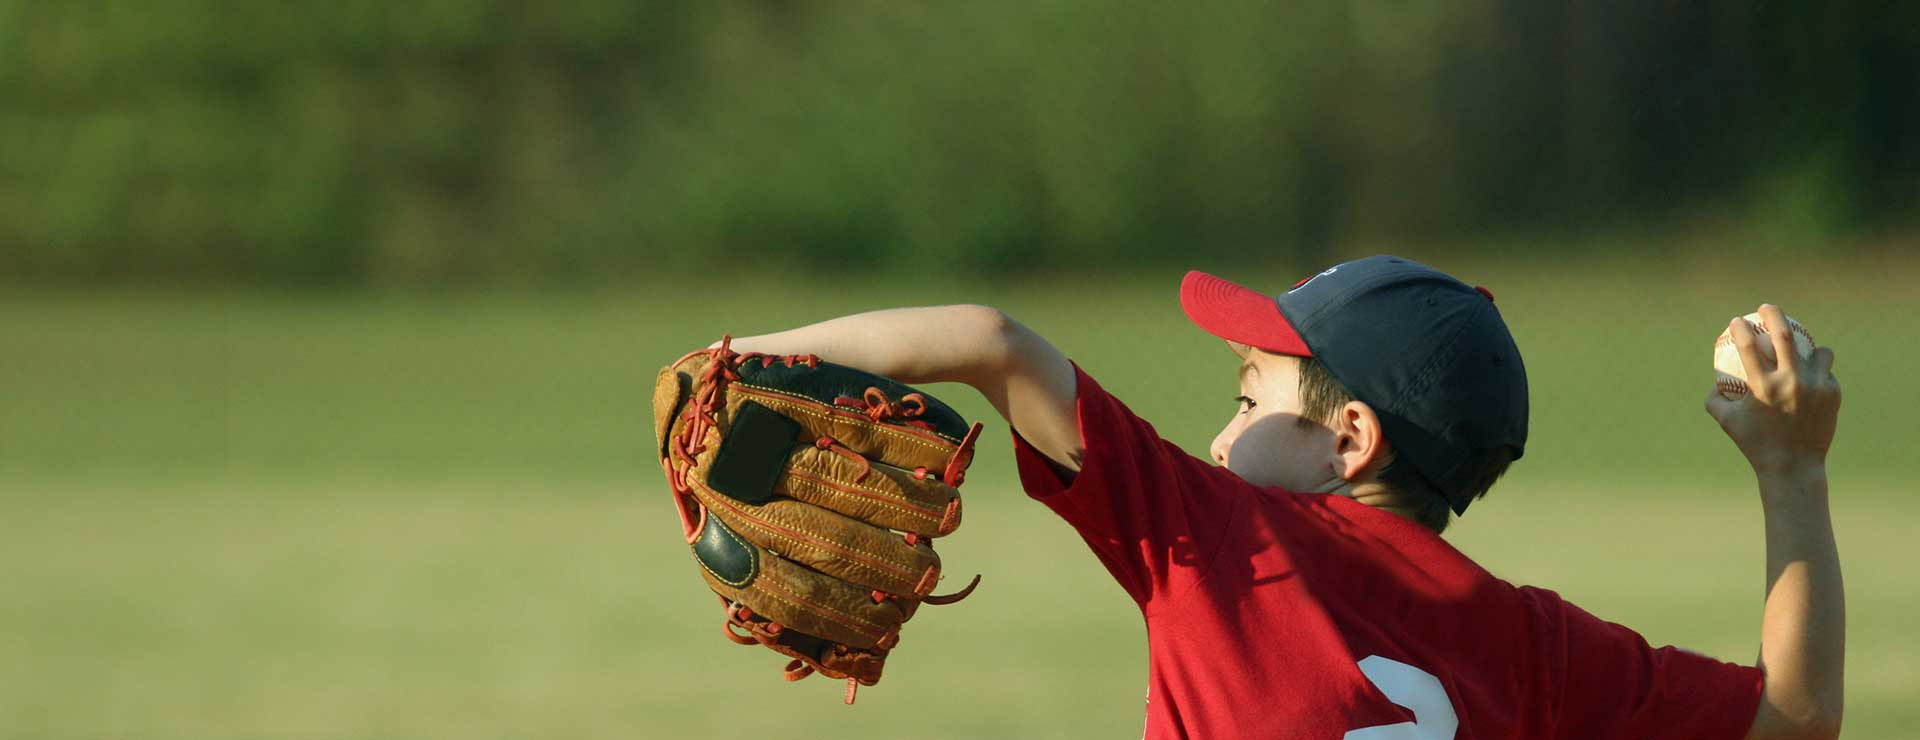 A young boy winds up his arm to pitch a baseball.